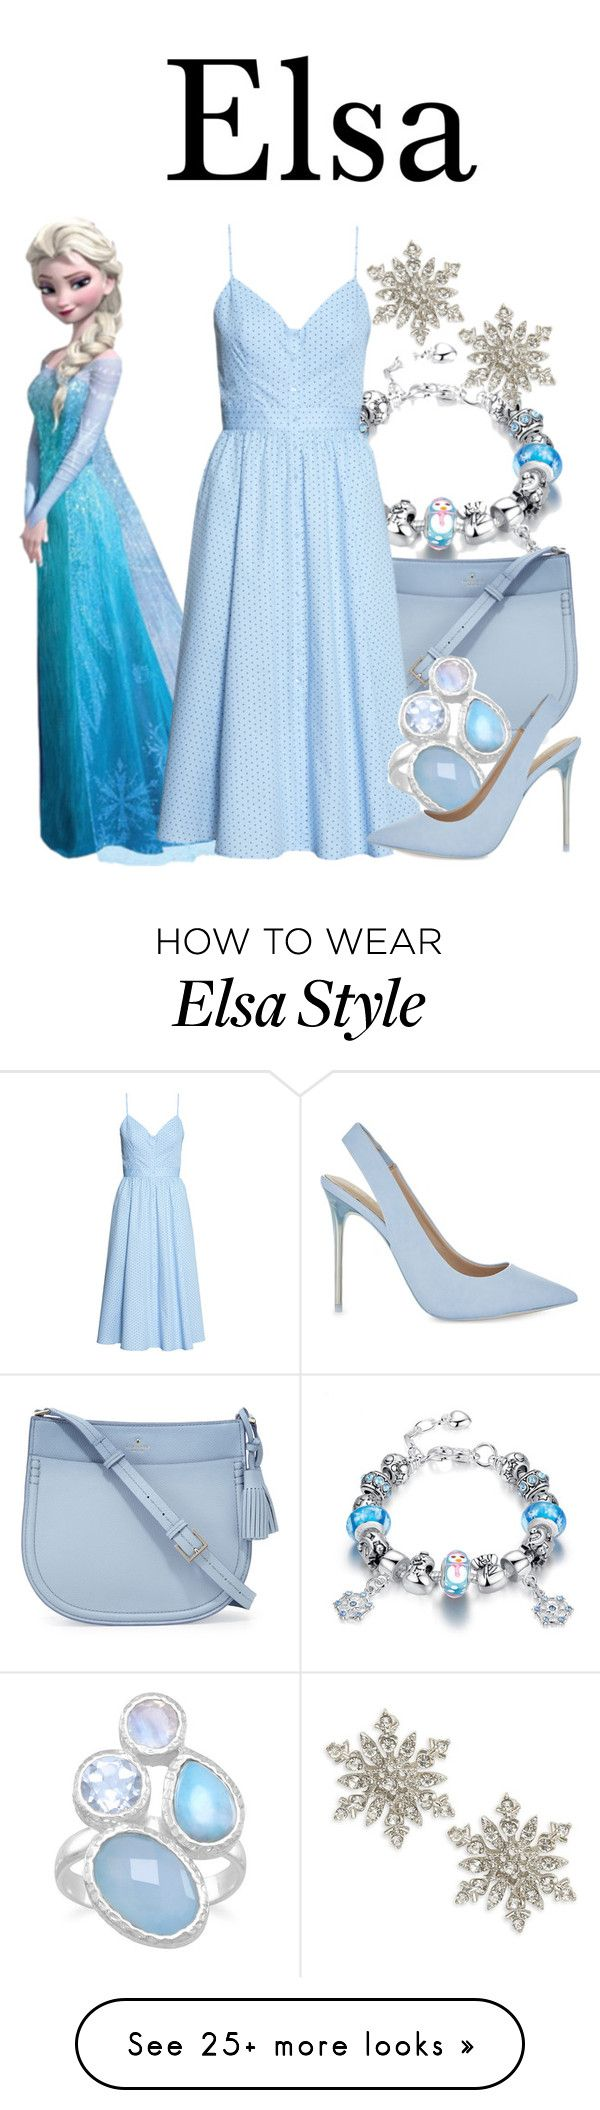 """Elsa"" by megan-vanwinkle on Polyvore featuring Design Lab, Kate Spade, ALDO, disney and polyvoreeditorial"